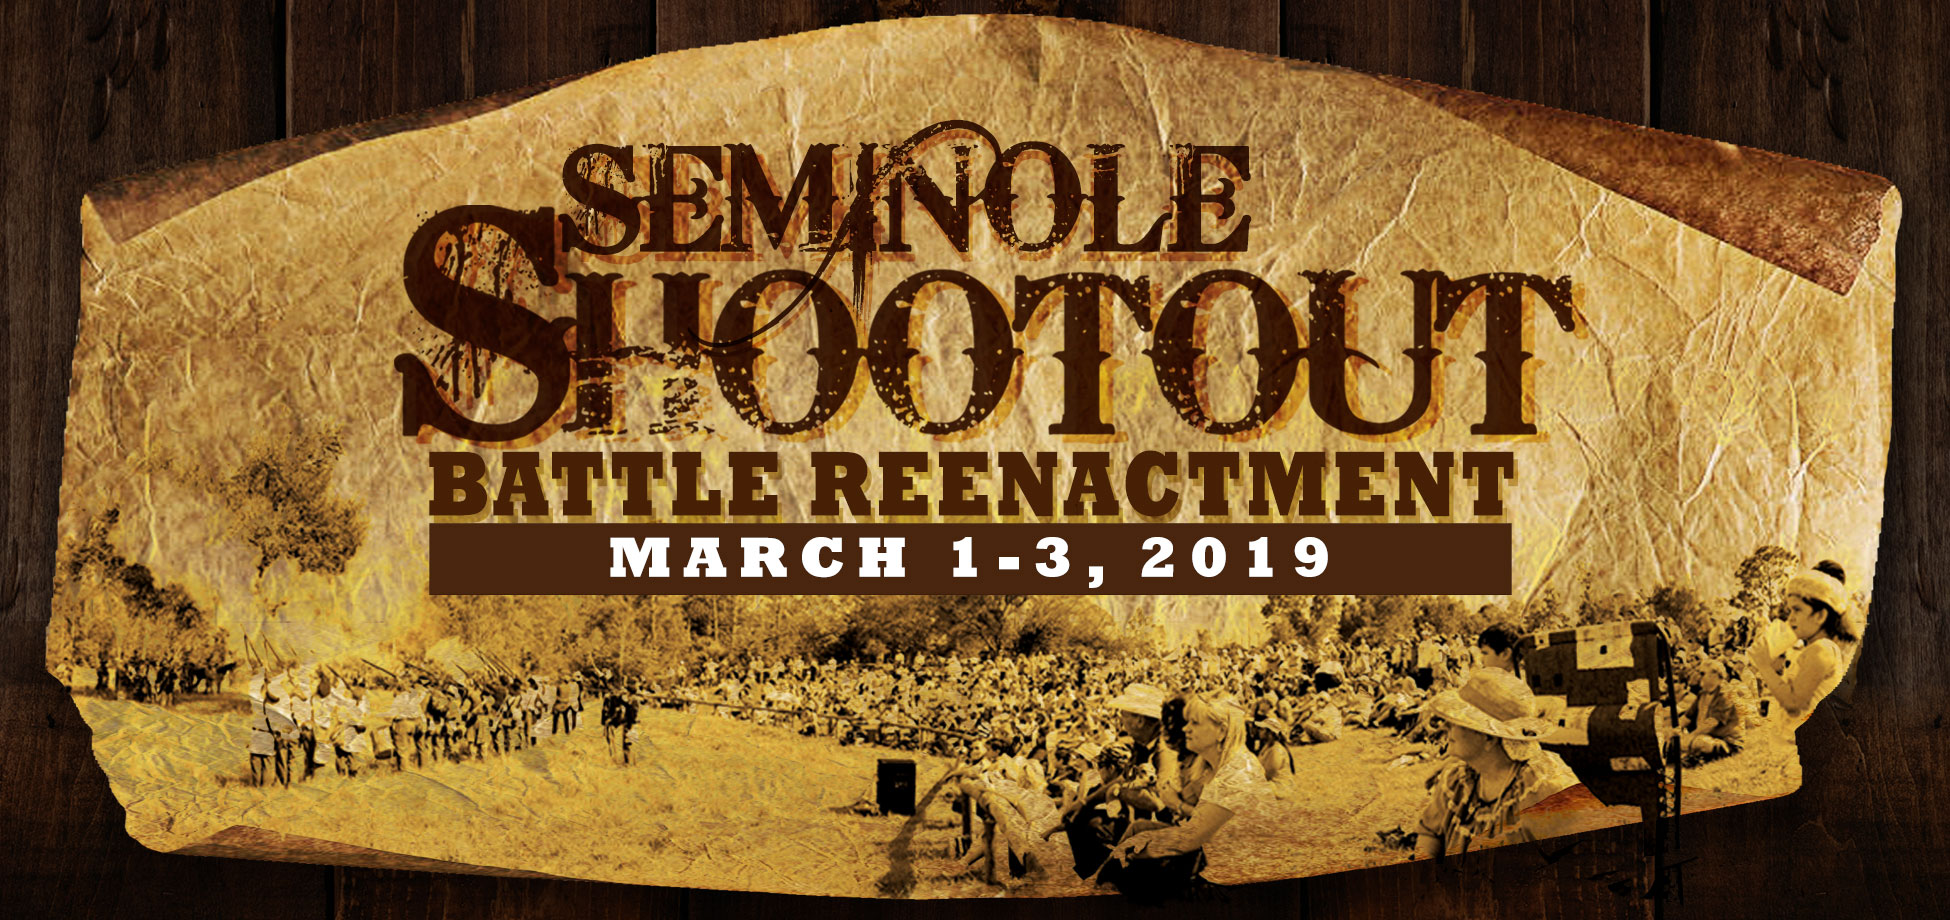 Seminole Shootout Battle Reenactment